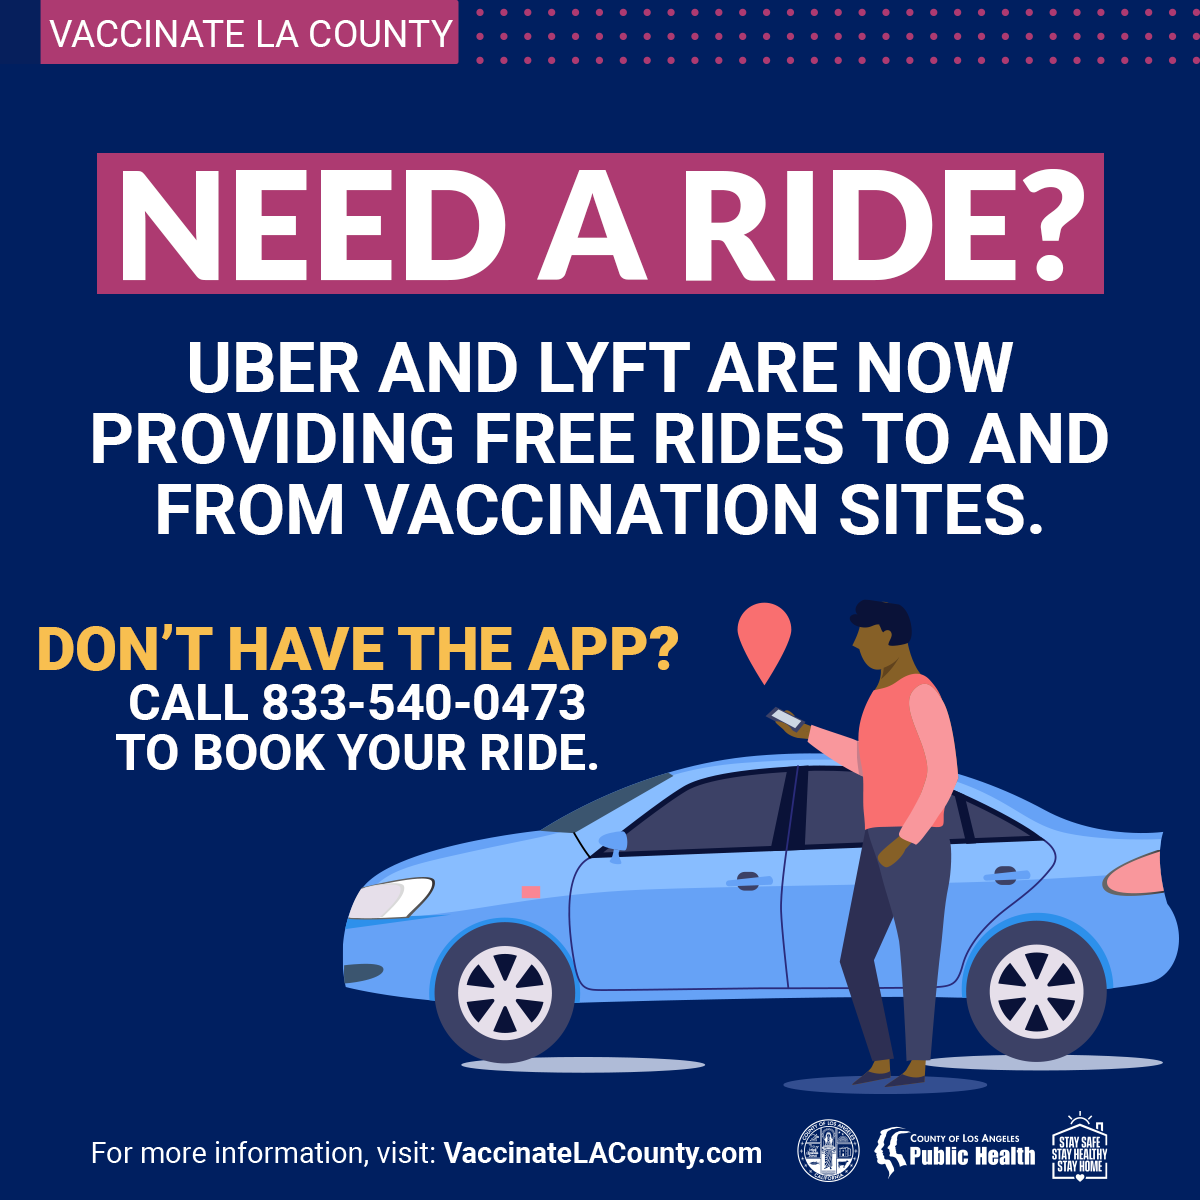 Uber and Lyft offer free rides to vaccine locations.